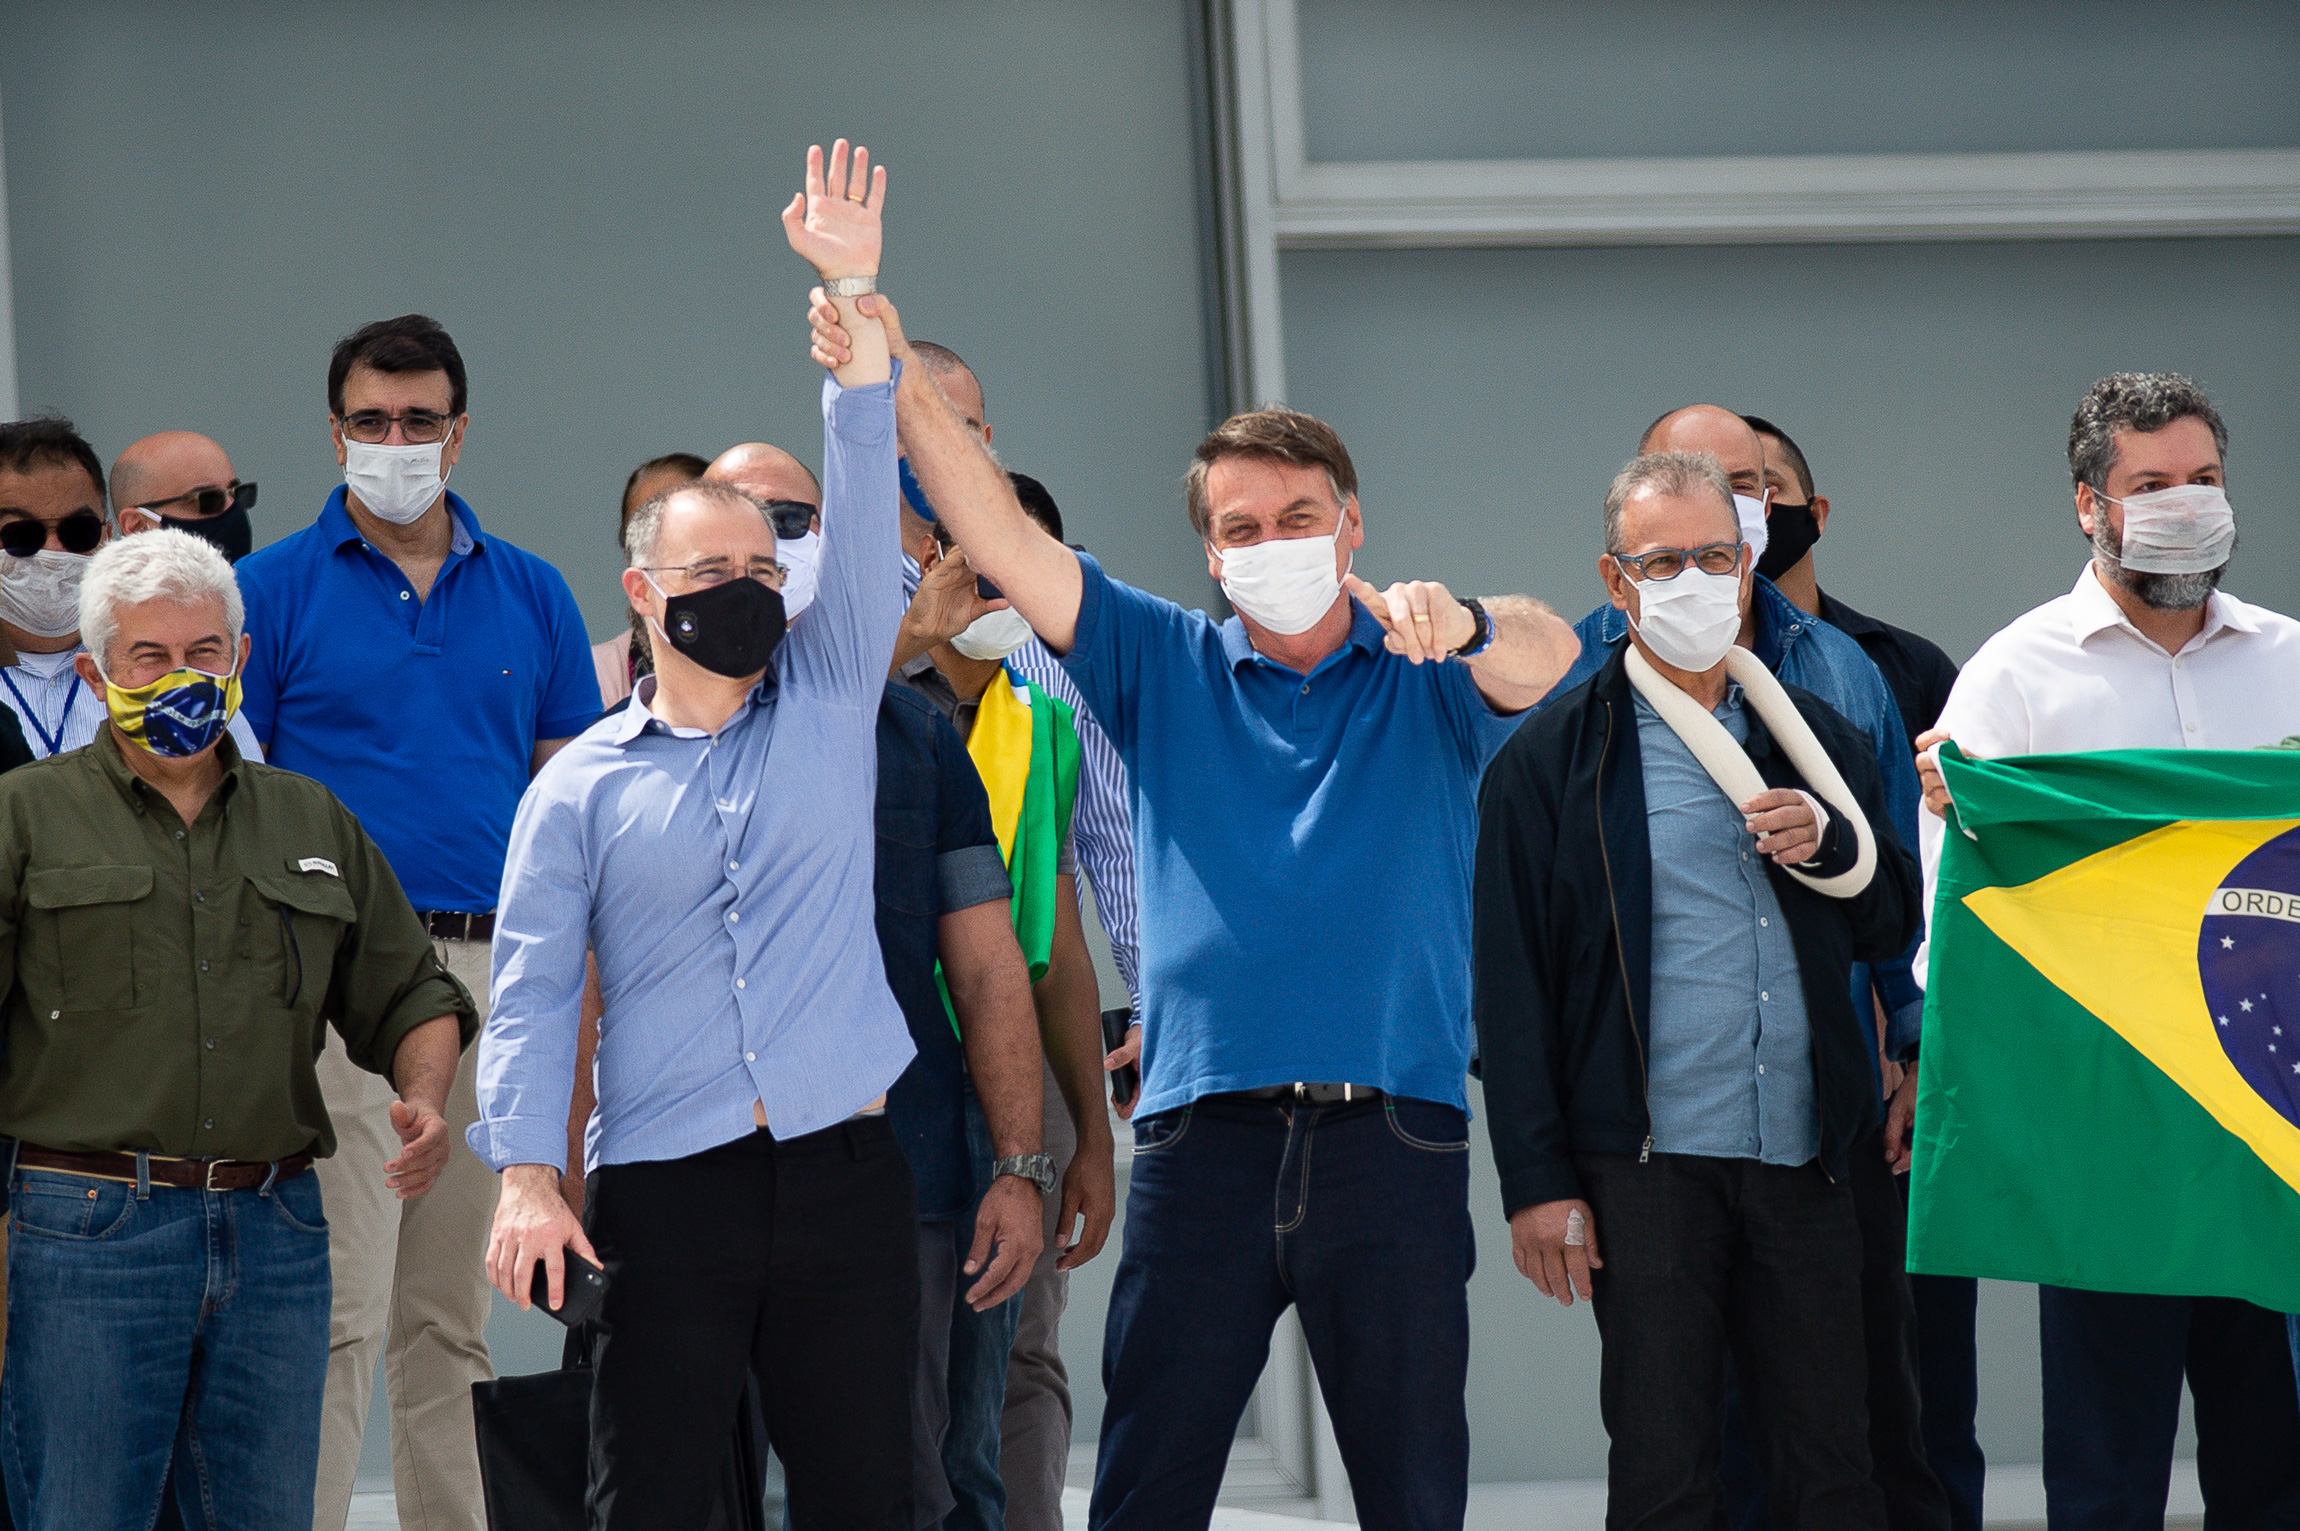 Brazilian President Jair Bolsonaro and Justice Minister André Luiz Mendonça participates in a protest against the National Congress and the Supreme Courtamidstthe coronavirus (COVID-19) pandemic at the Planalto Palace on May 17, 2020 in Brasilia.